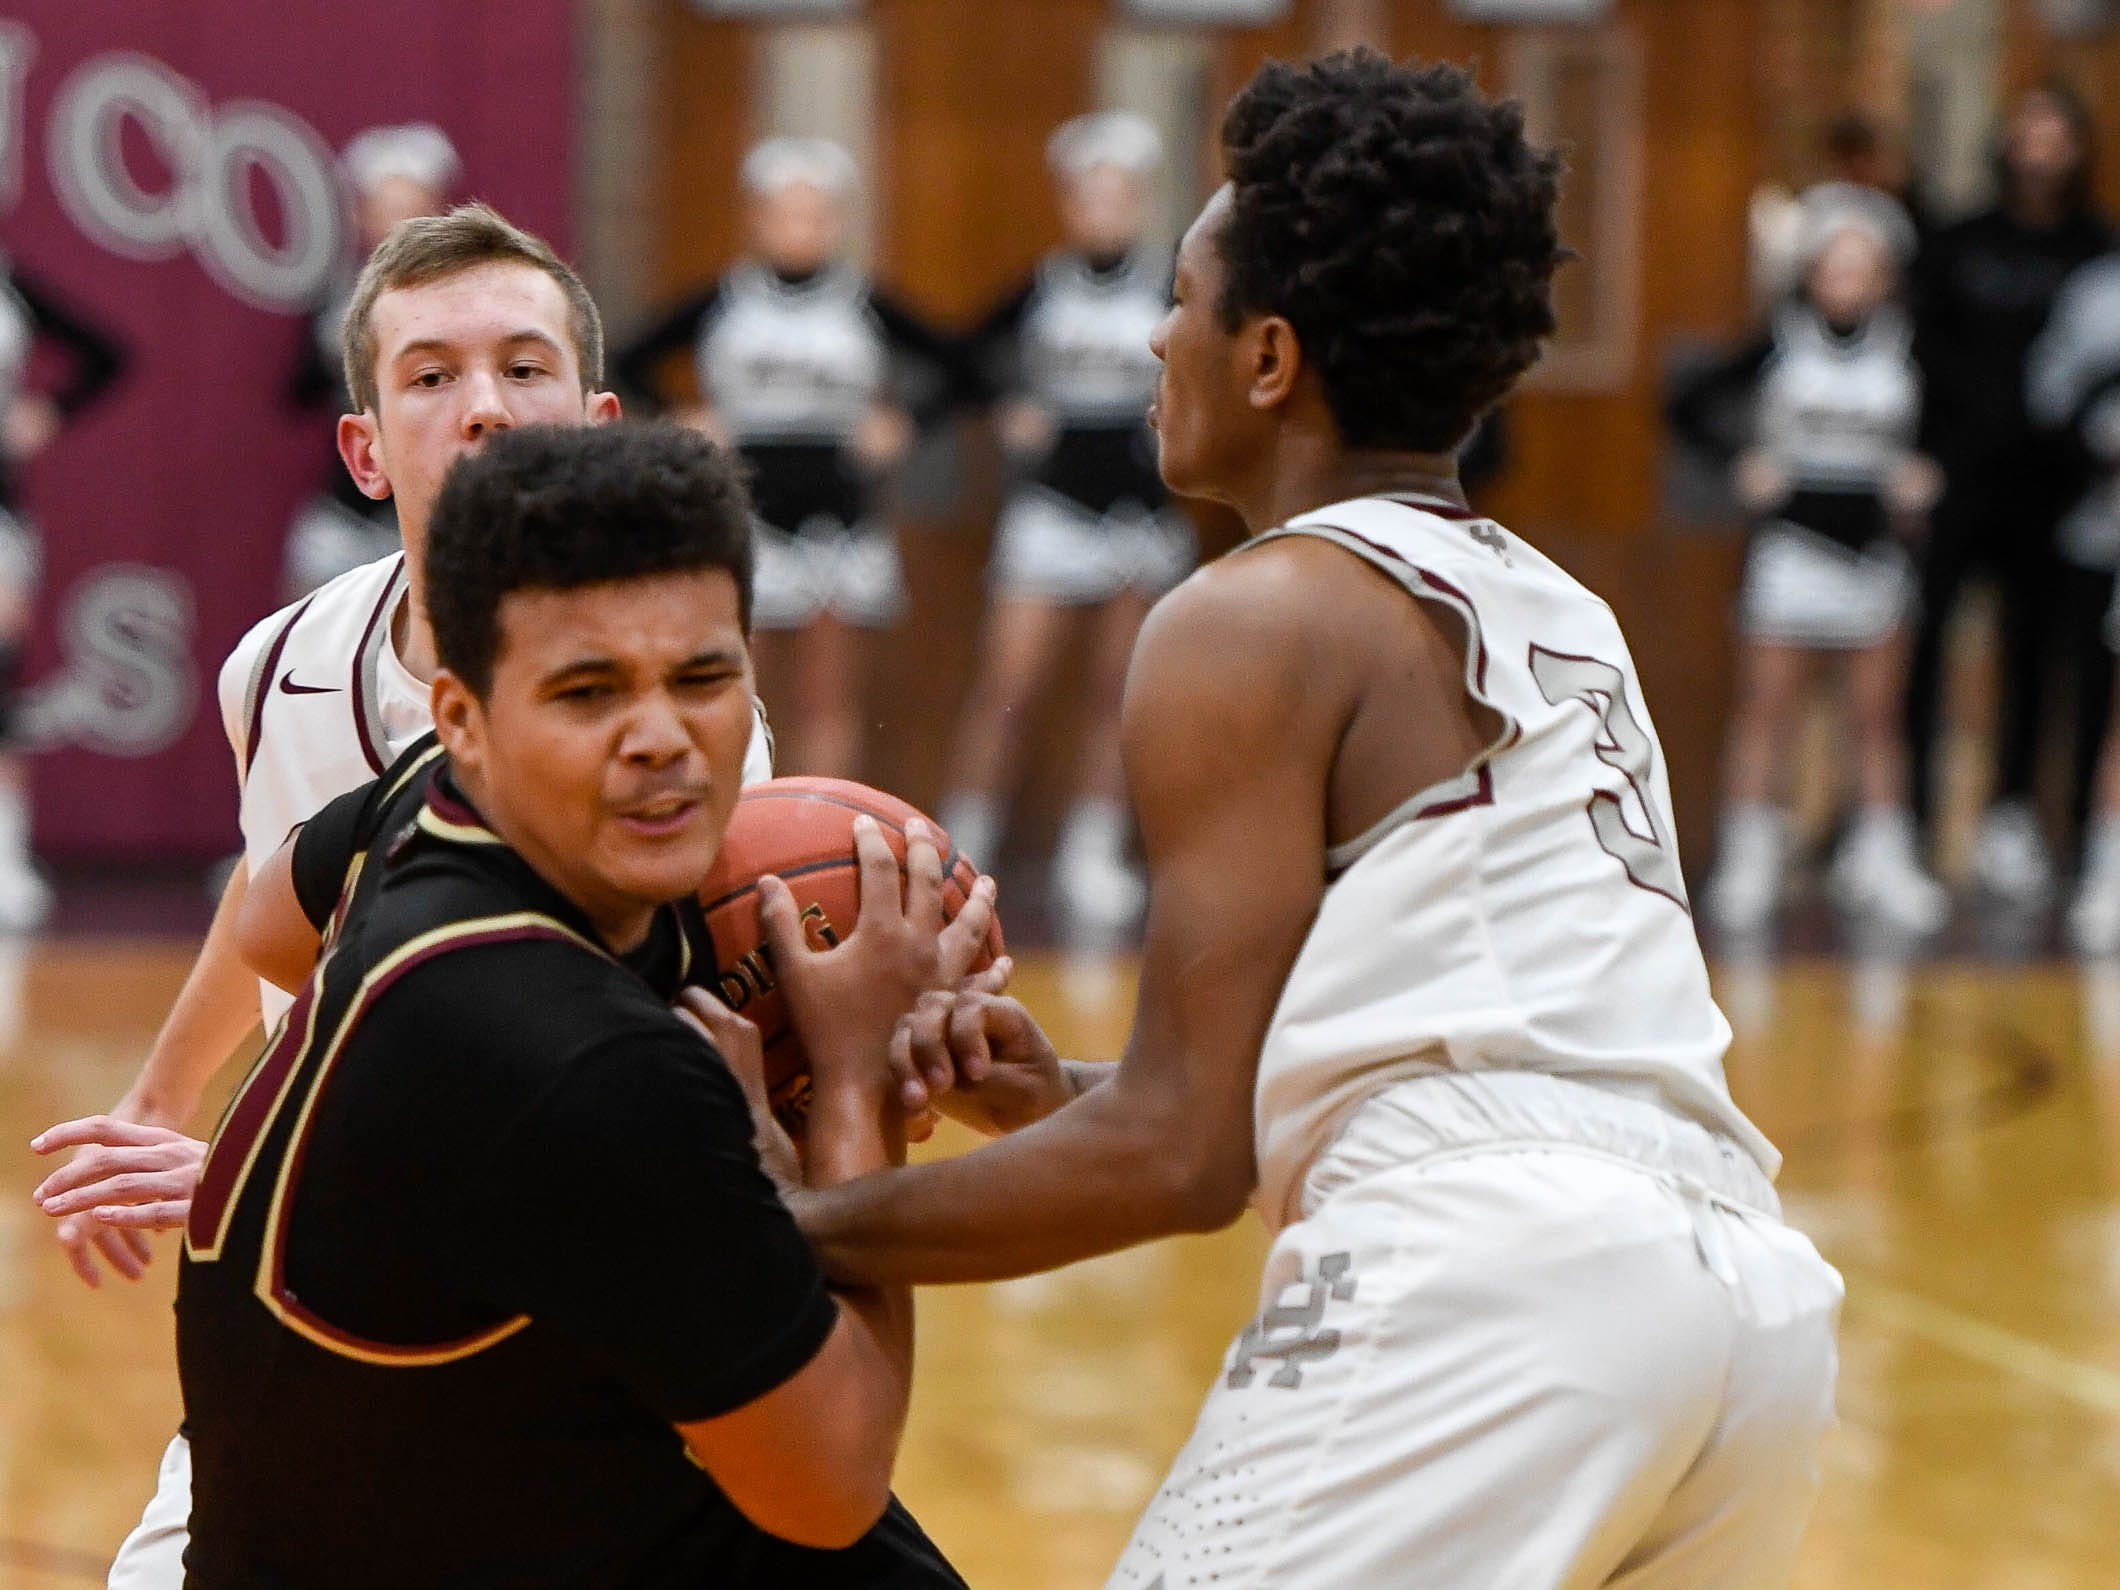 Webster County's Malachi Douglas (30) tries to drive past Henderson's Daymian Dixon (3) as the Henderson County Colonels play 6th district rival the Webster County Trojans at Henderson's Colonel Gym Tuesday, January 8, 2019.